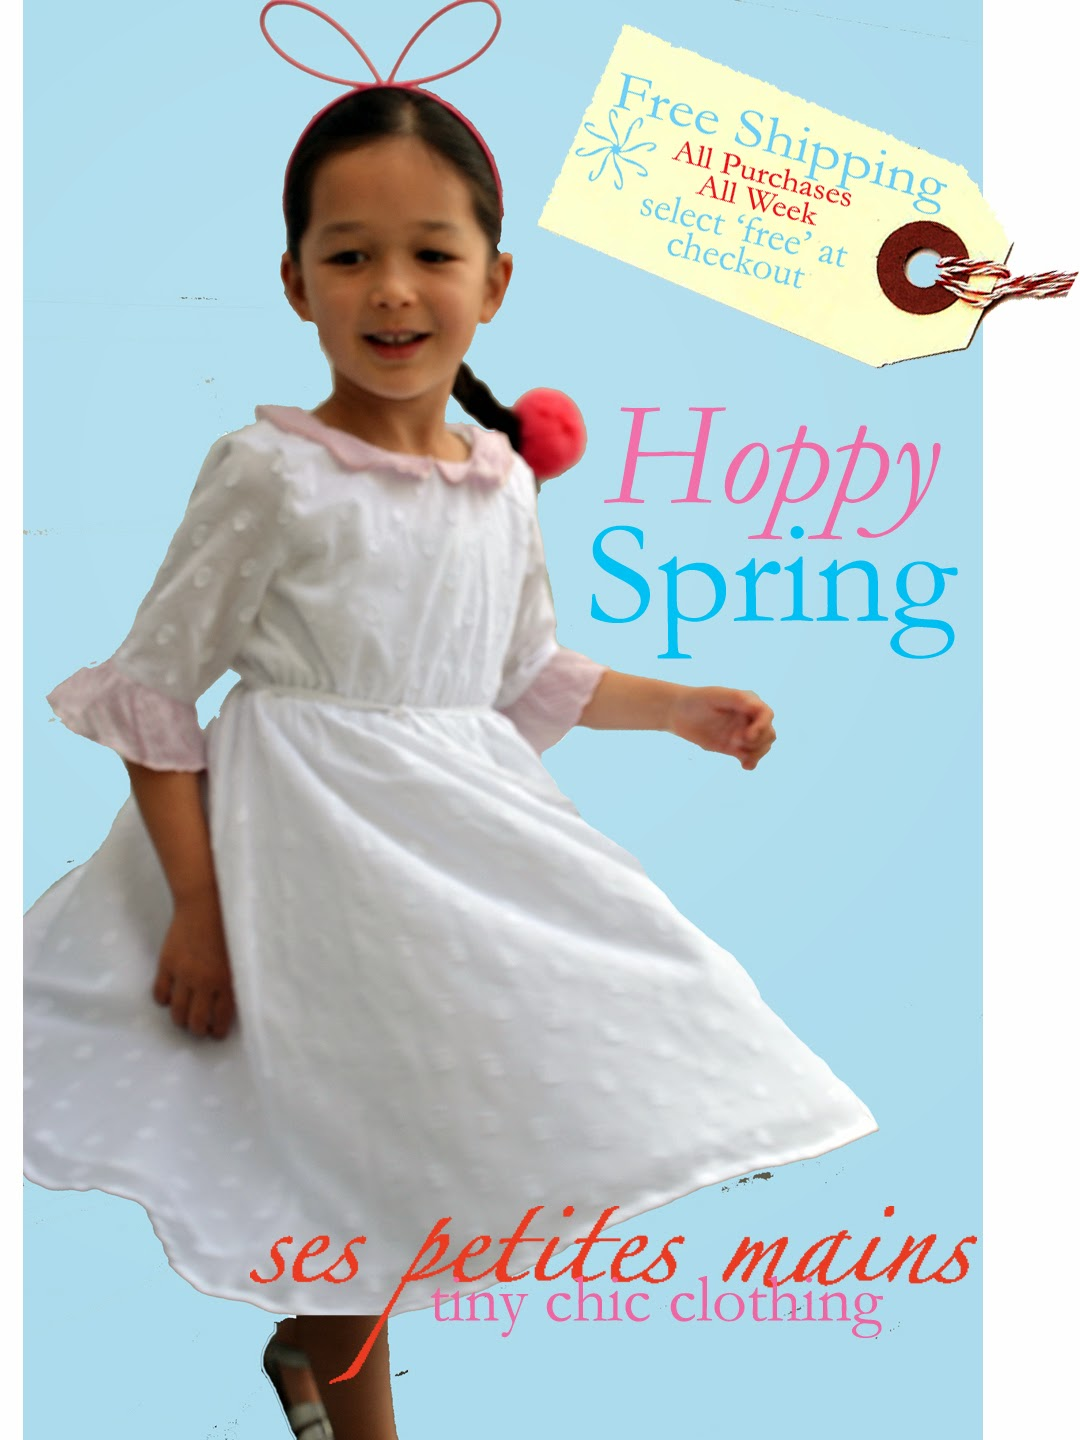 free shipping, spring 2015, spring holiday dresses, easter holiday dresses, flower girl dresses, junior bridesmaid dresses, SFMade,